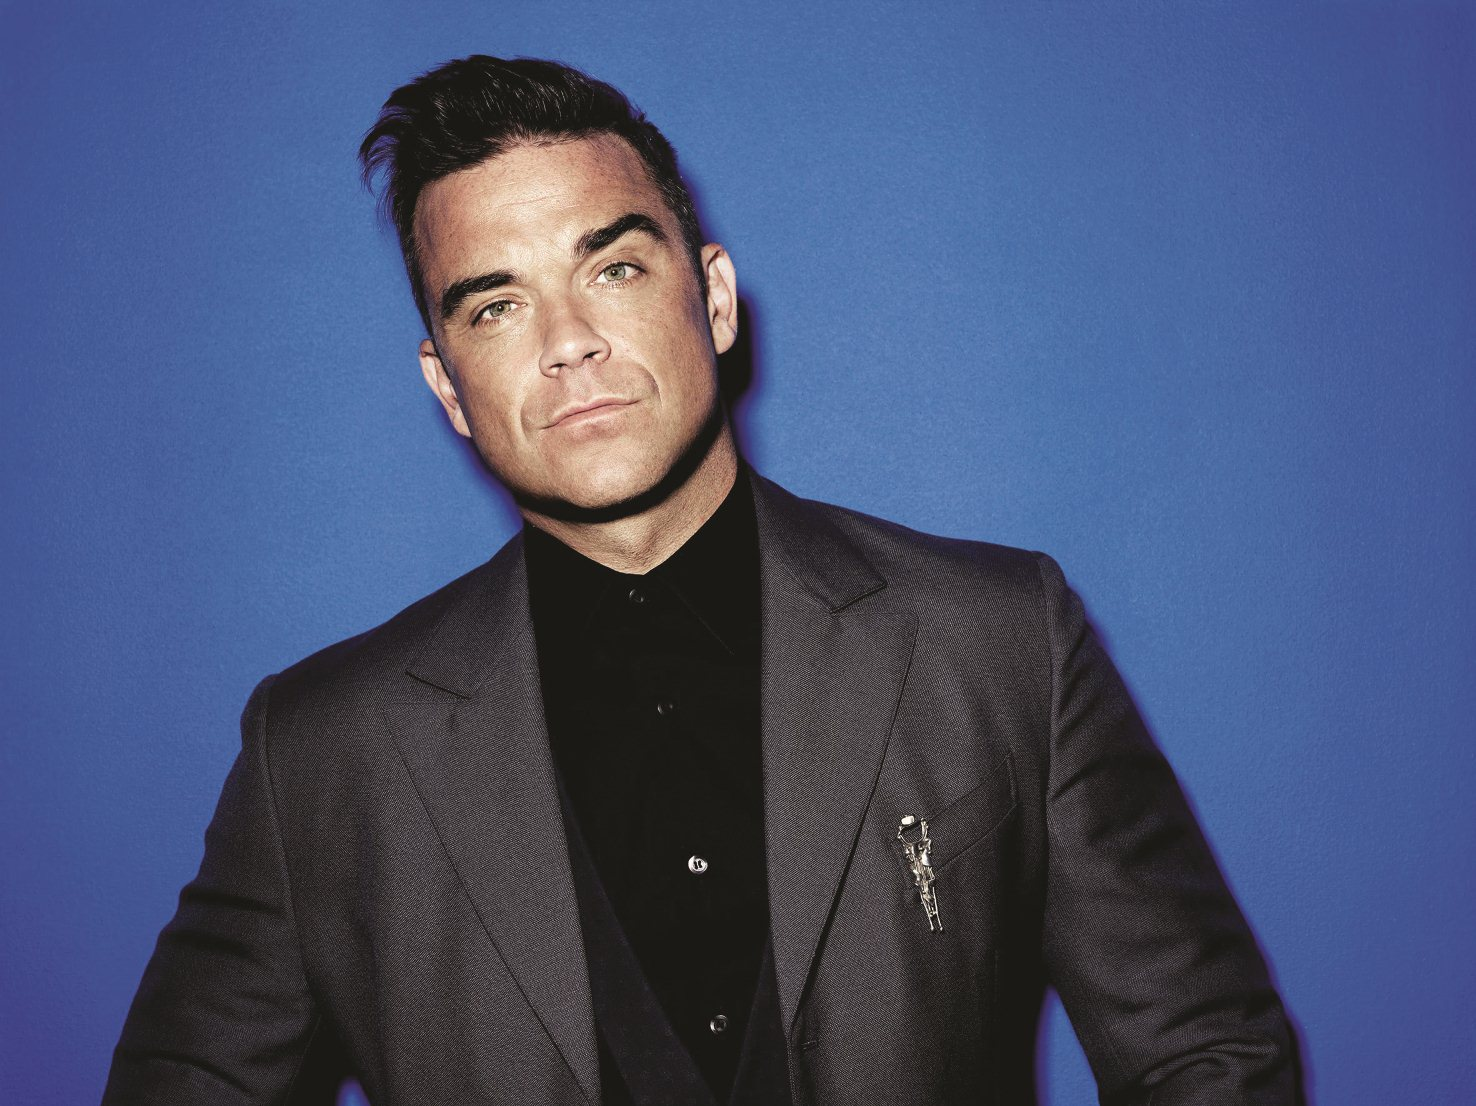 Robbie Williams reignites feud with Liam Gallagher while onstage in Las Vegas